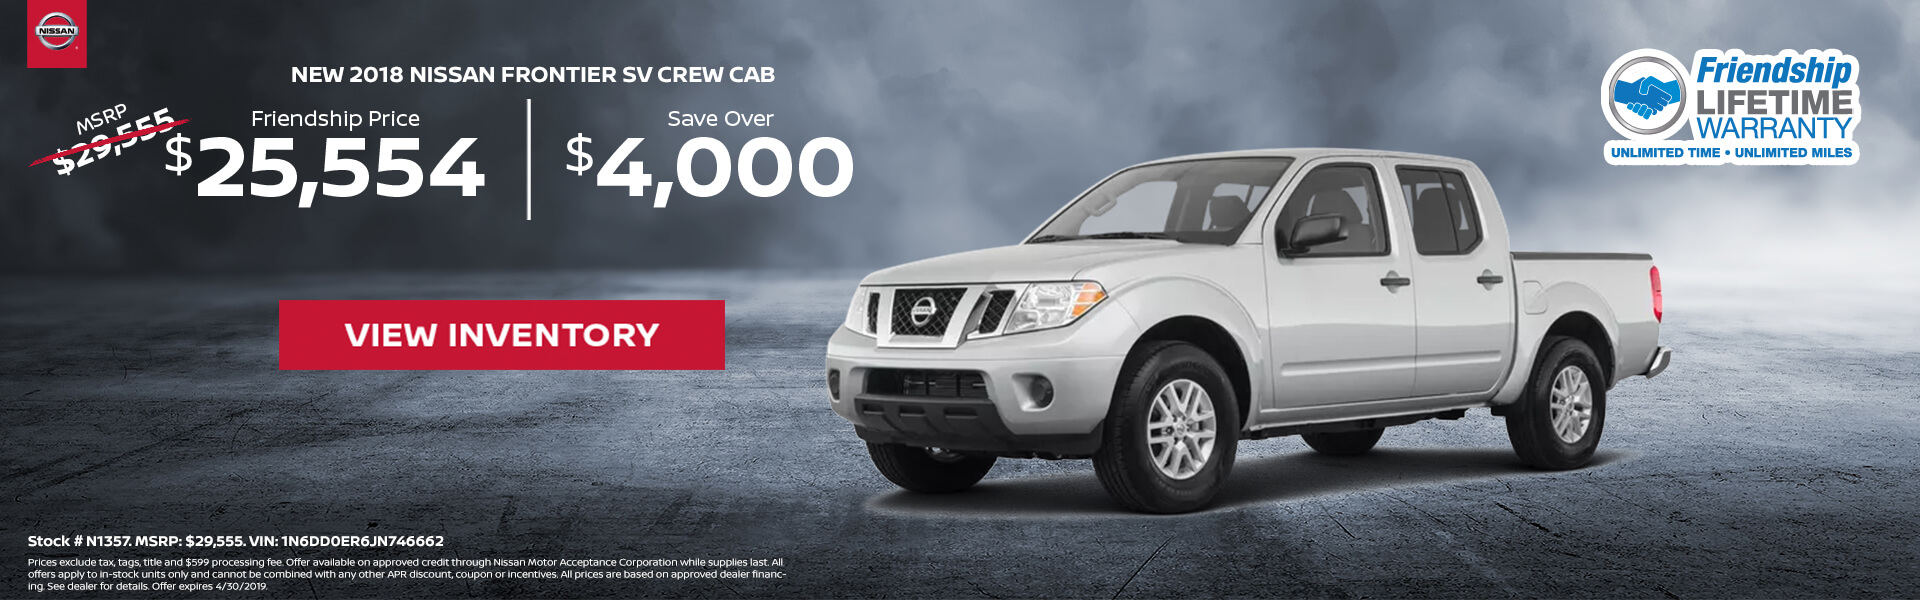 Nissan Frontier $25,554 Purchase